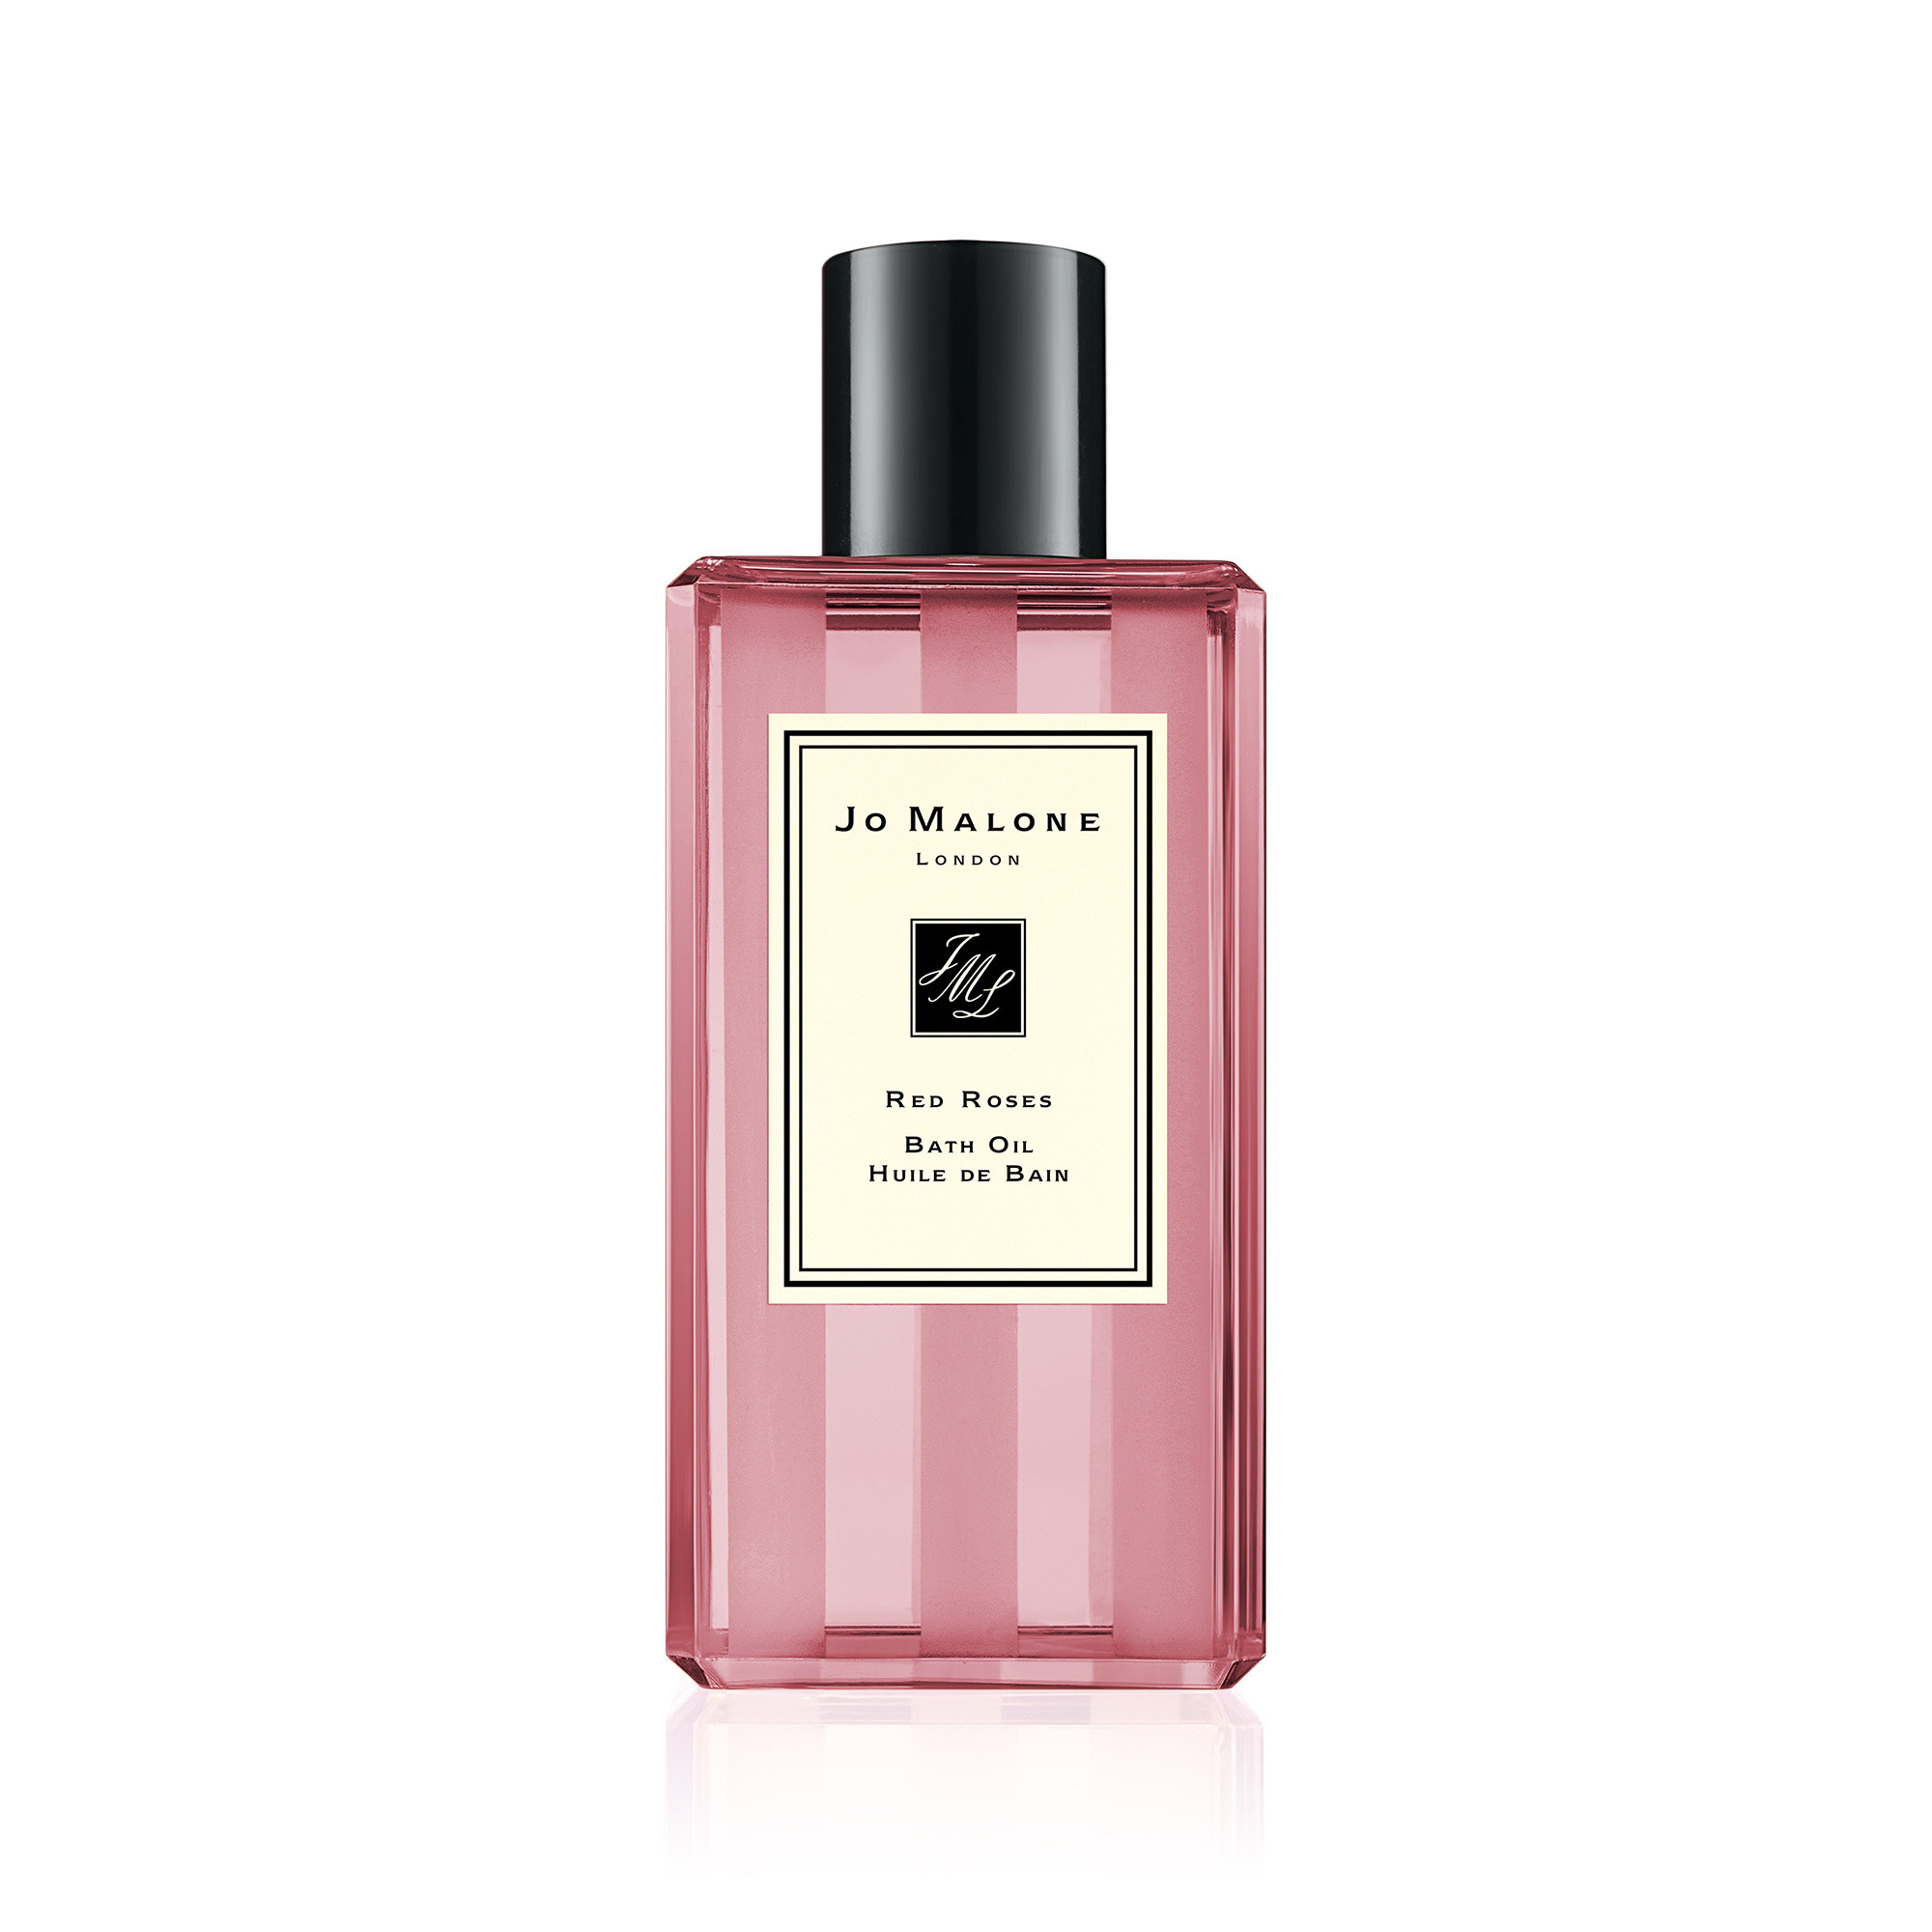 Jo Malone London red roses bath oil 250 ml, Beige, large image number 0